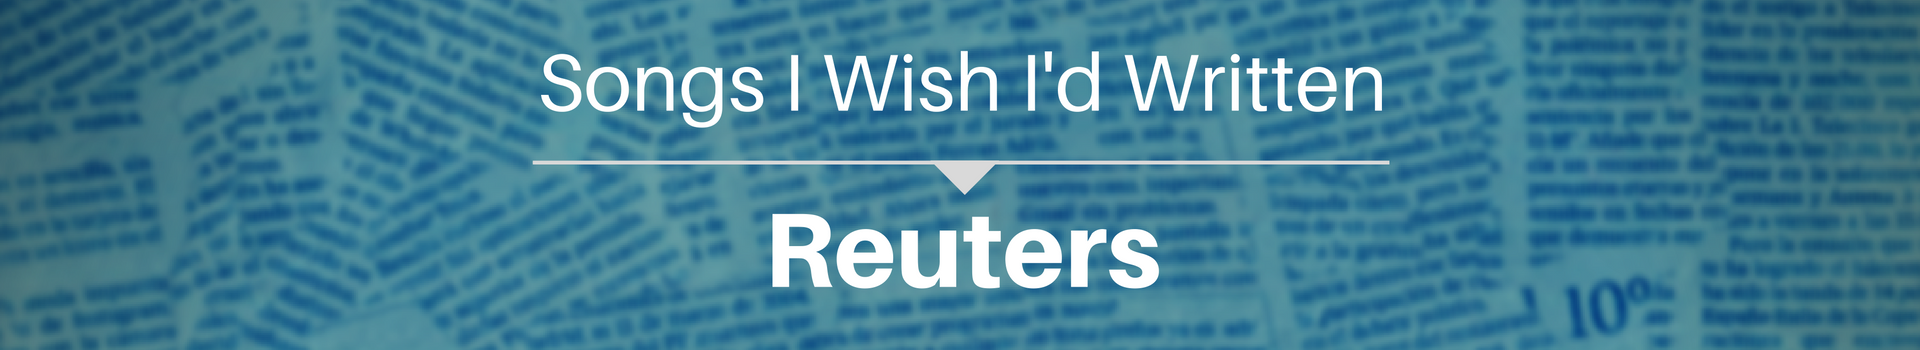 Songs I Wish I'd Written: Reuters